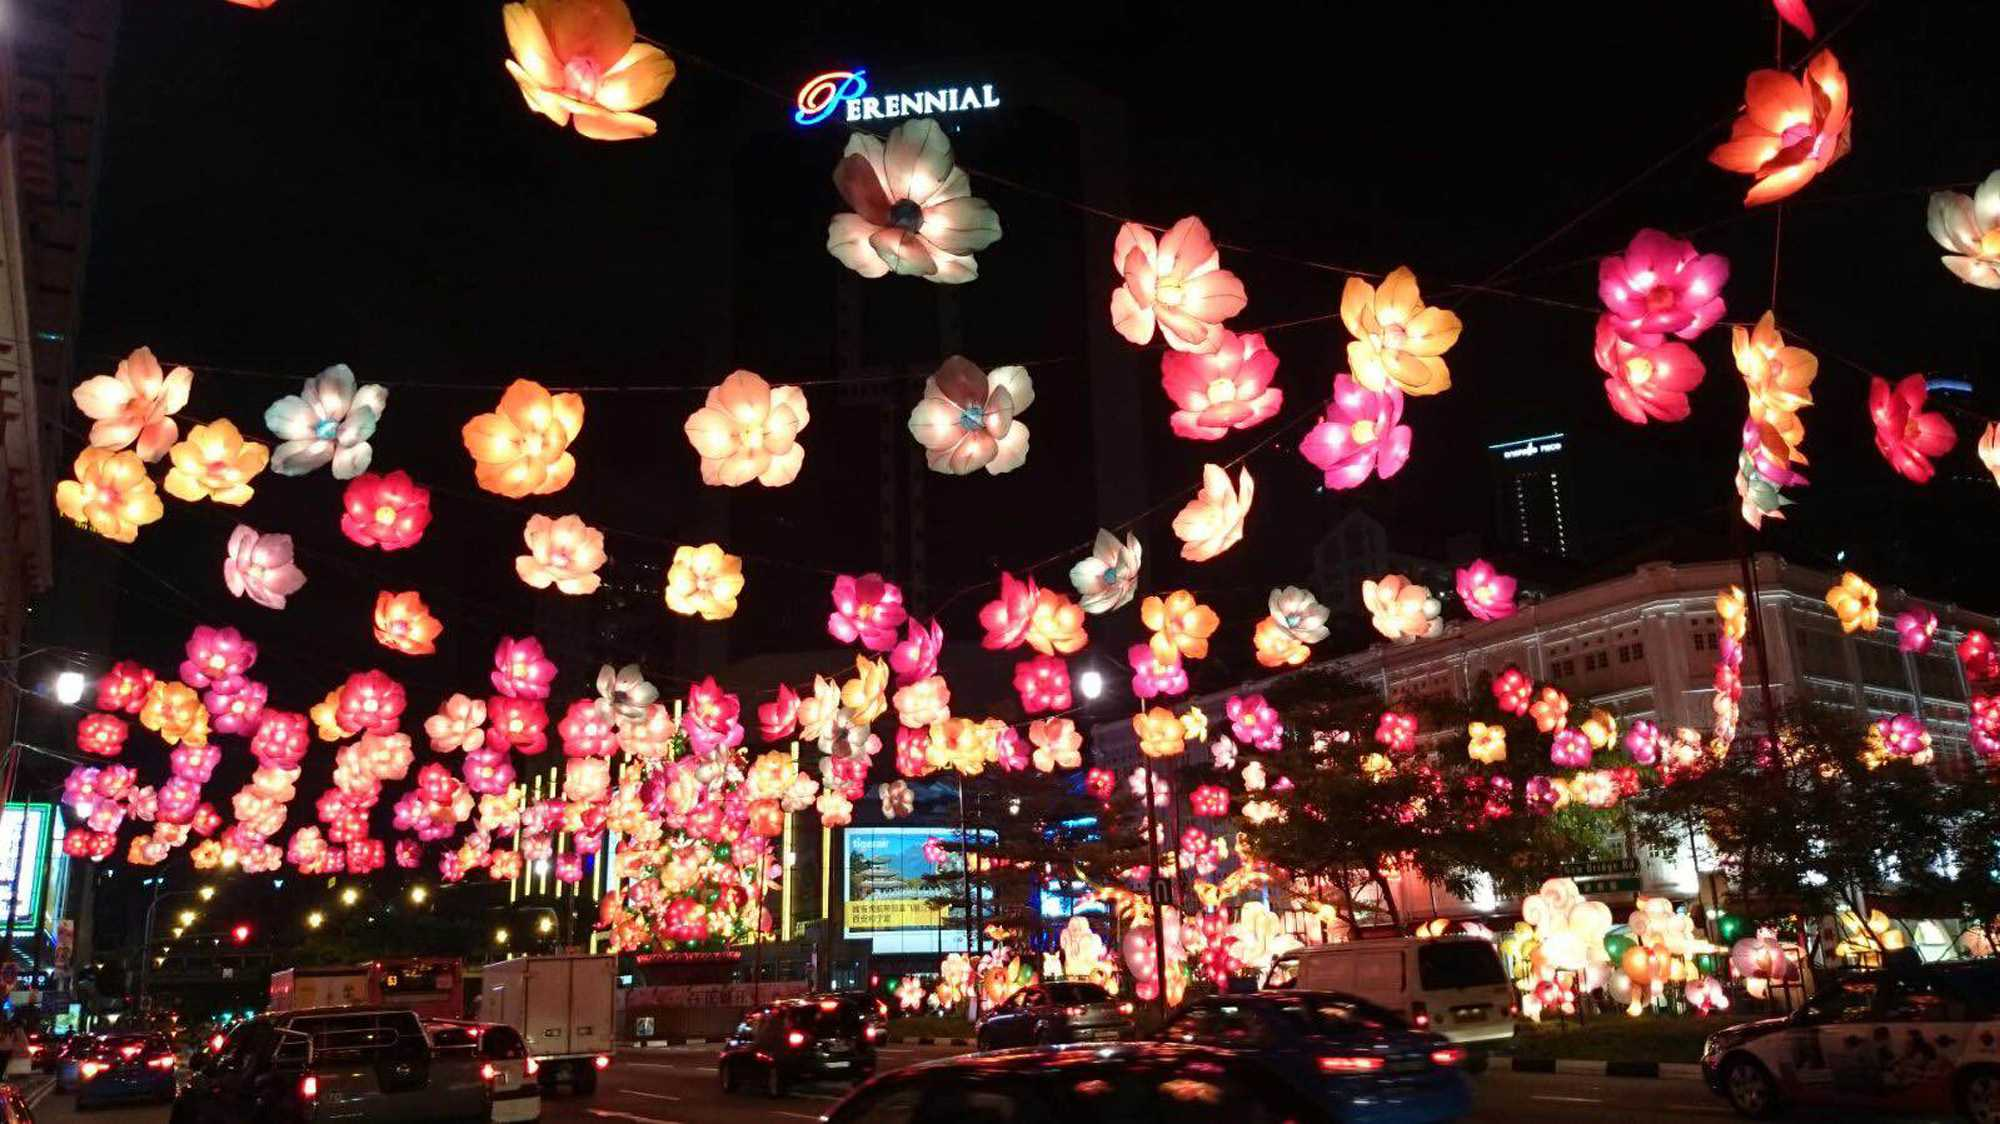 %3Cp%3ELights.+Lanterns.+Firecrackers.+From+Champaign+to+China%2C+the+world+shines+bright+as+families+celebrate+their+own+special+holidays.%26nbsp%3BAt+a+campus+as+diverse+as+this%2C+the+holiday+season+isn%E2%80%99t+the+same+for+everyone%26mdash%3Bespecially+for+those+who+are+international+students.%3C%2Fp%3E